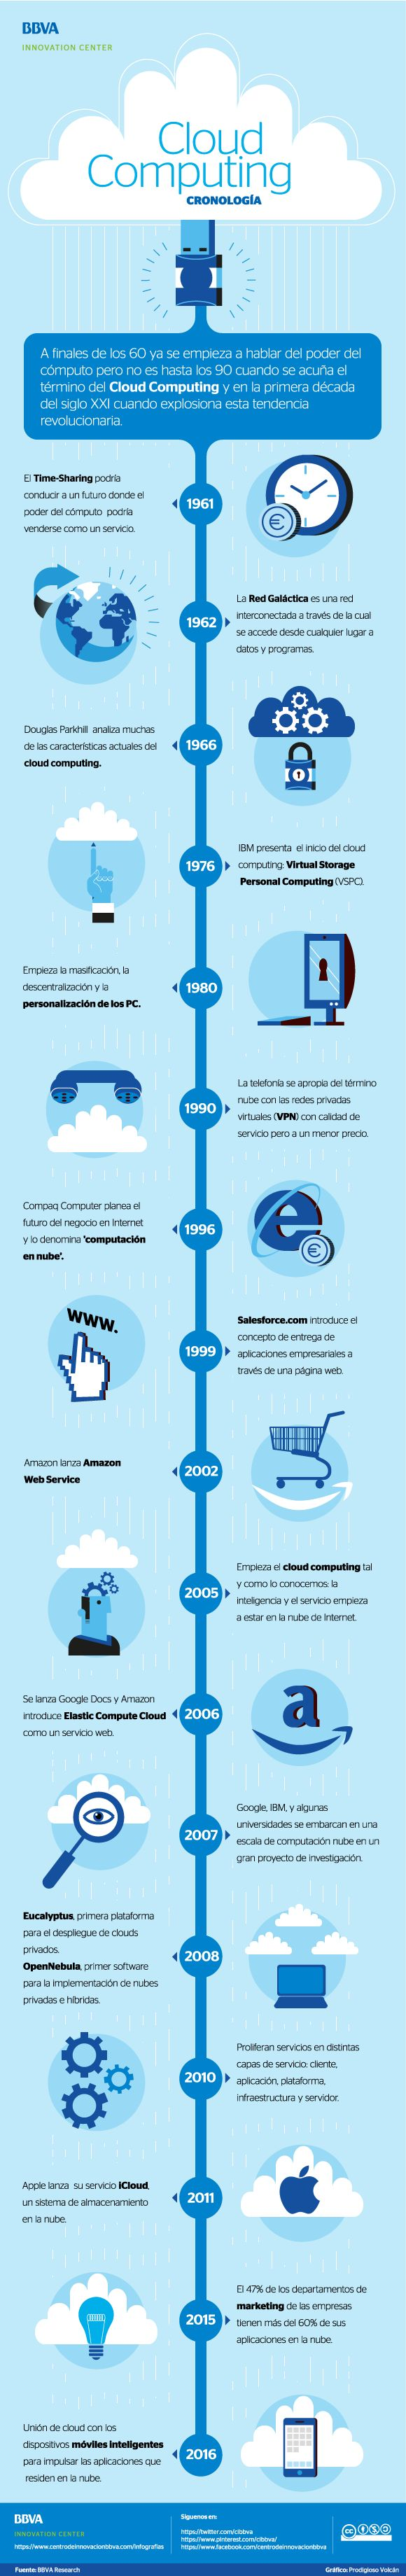 Cloud Computing #infografia #infographic #cloudcomputing | Repinned by @drbrunogallo. http://cloudcomputingguide.vidlify.net